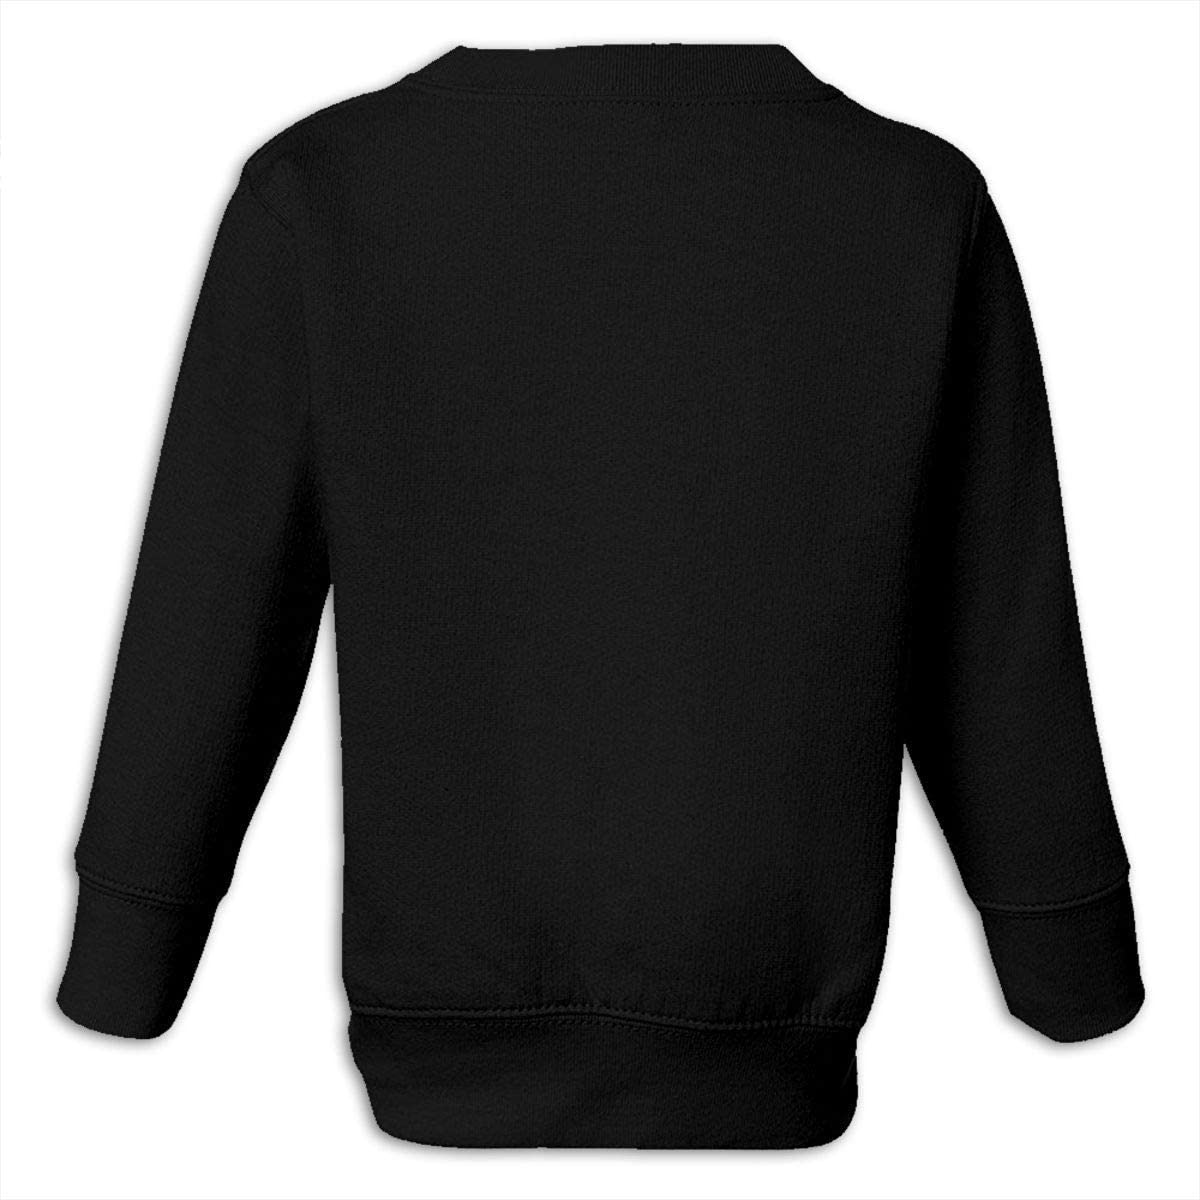 Eye in The Sky Boys Girls Pullover Sweaters Crewneck Sweatshirts Clothes for 2-6 Years Old Children